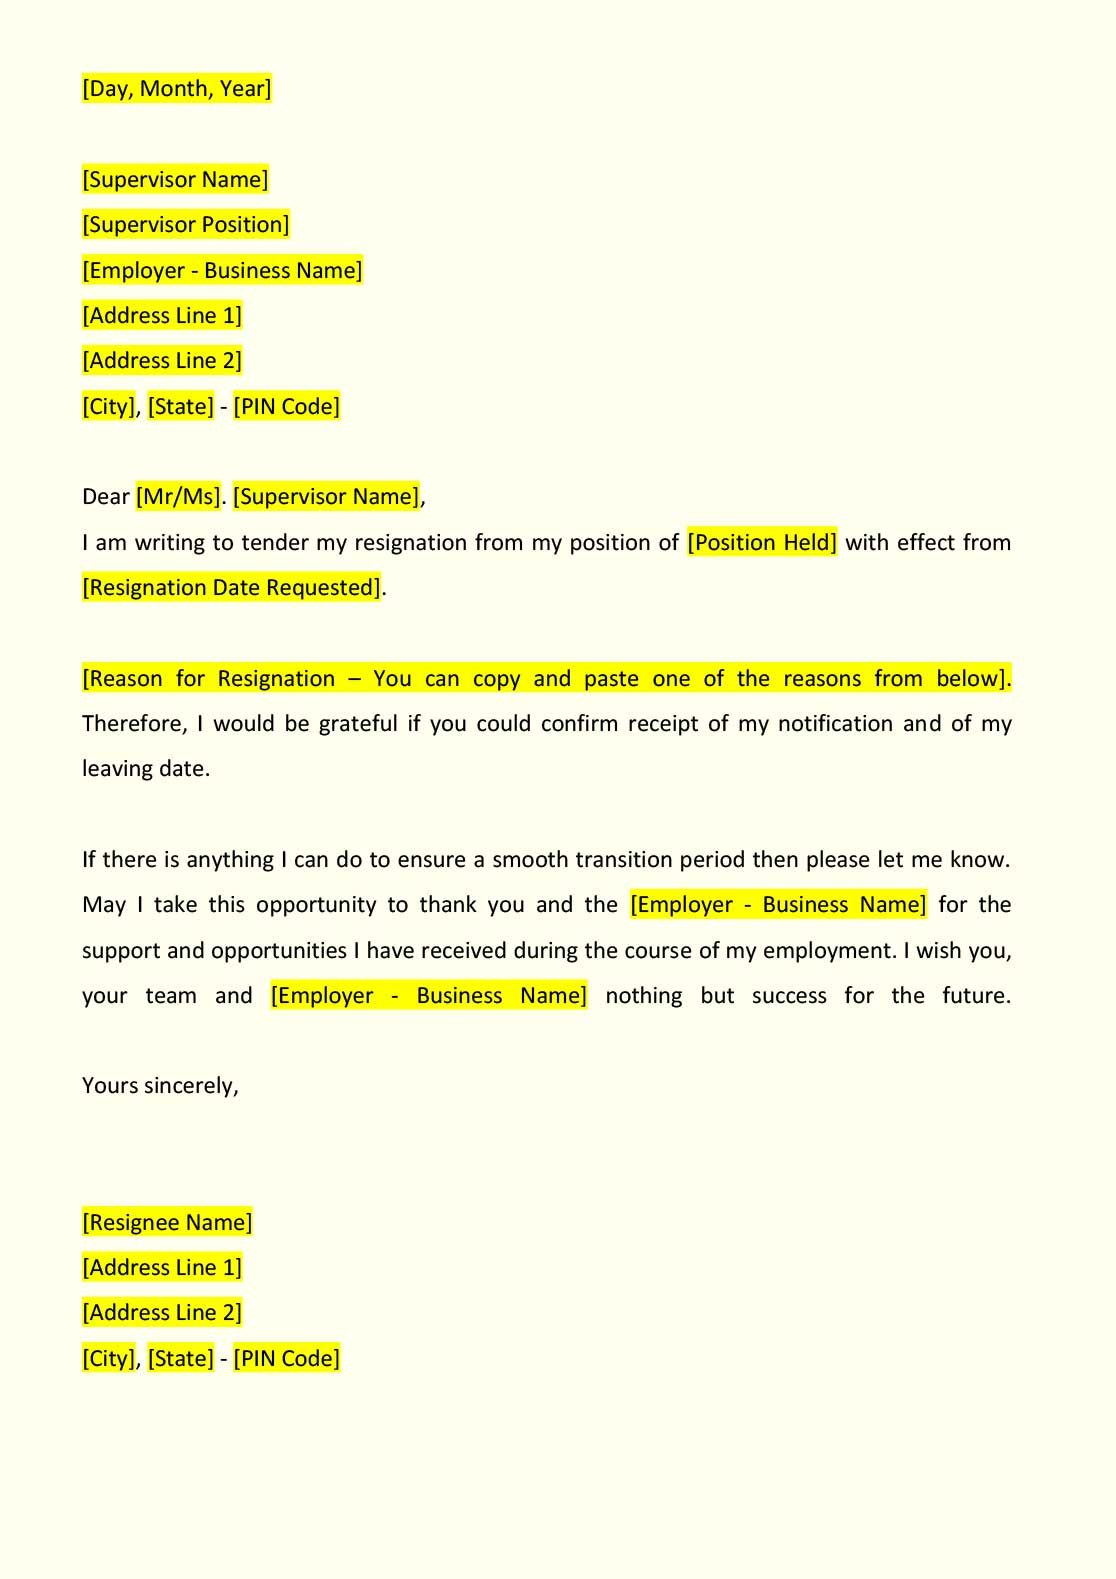 Sample Of Resignation Letter From Job Resignation Letter Format Indiafilings Document Center